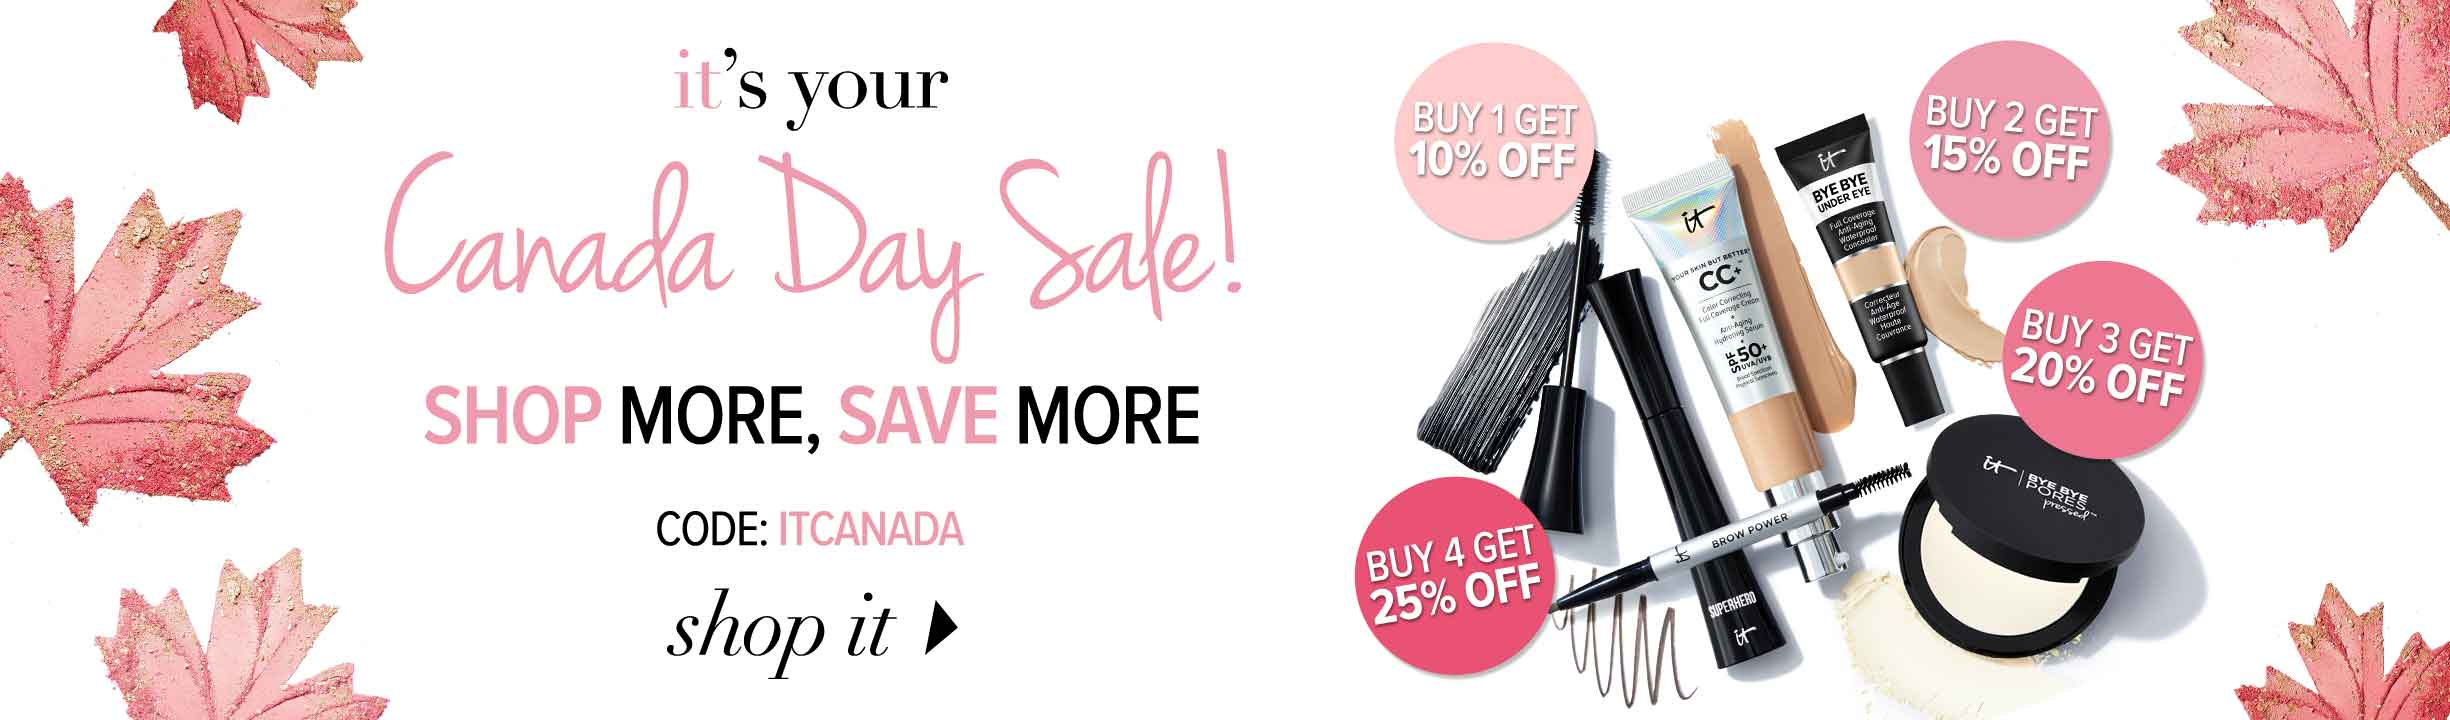 Latest add It Cosmetics Coupons